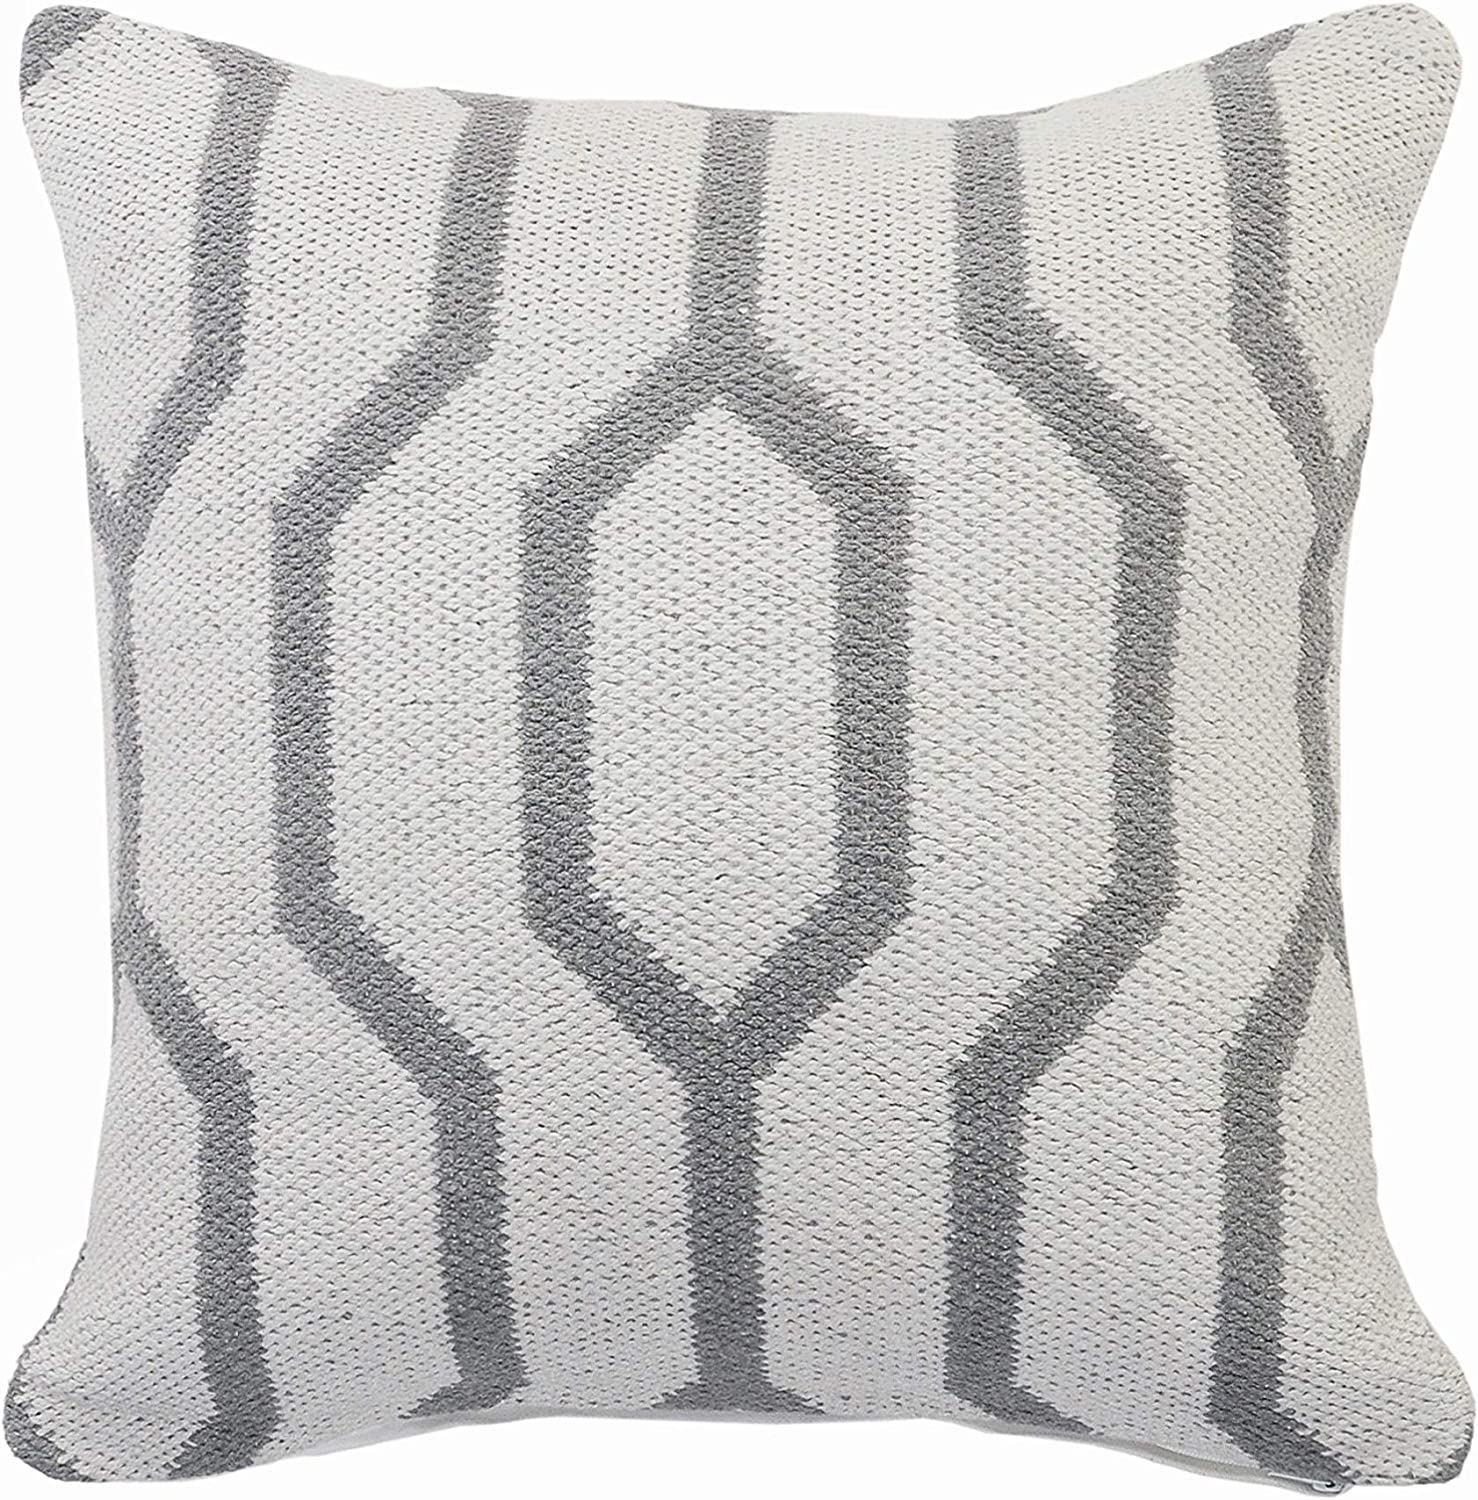 Amazon Com Lr Home Gray And White Geometric Throw Pillow 20 X 20 Home Kitchen